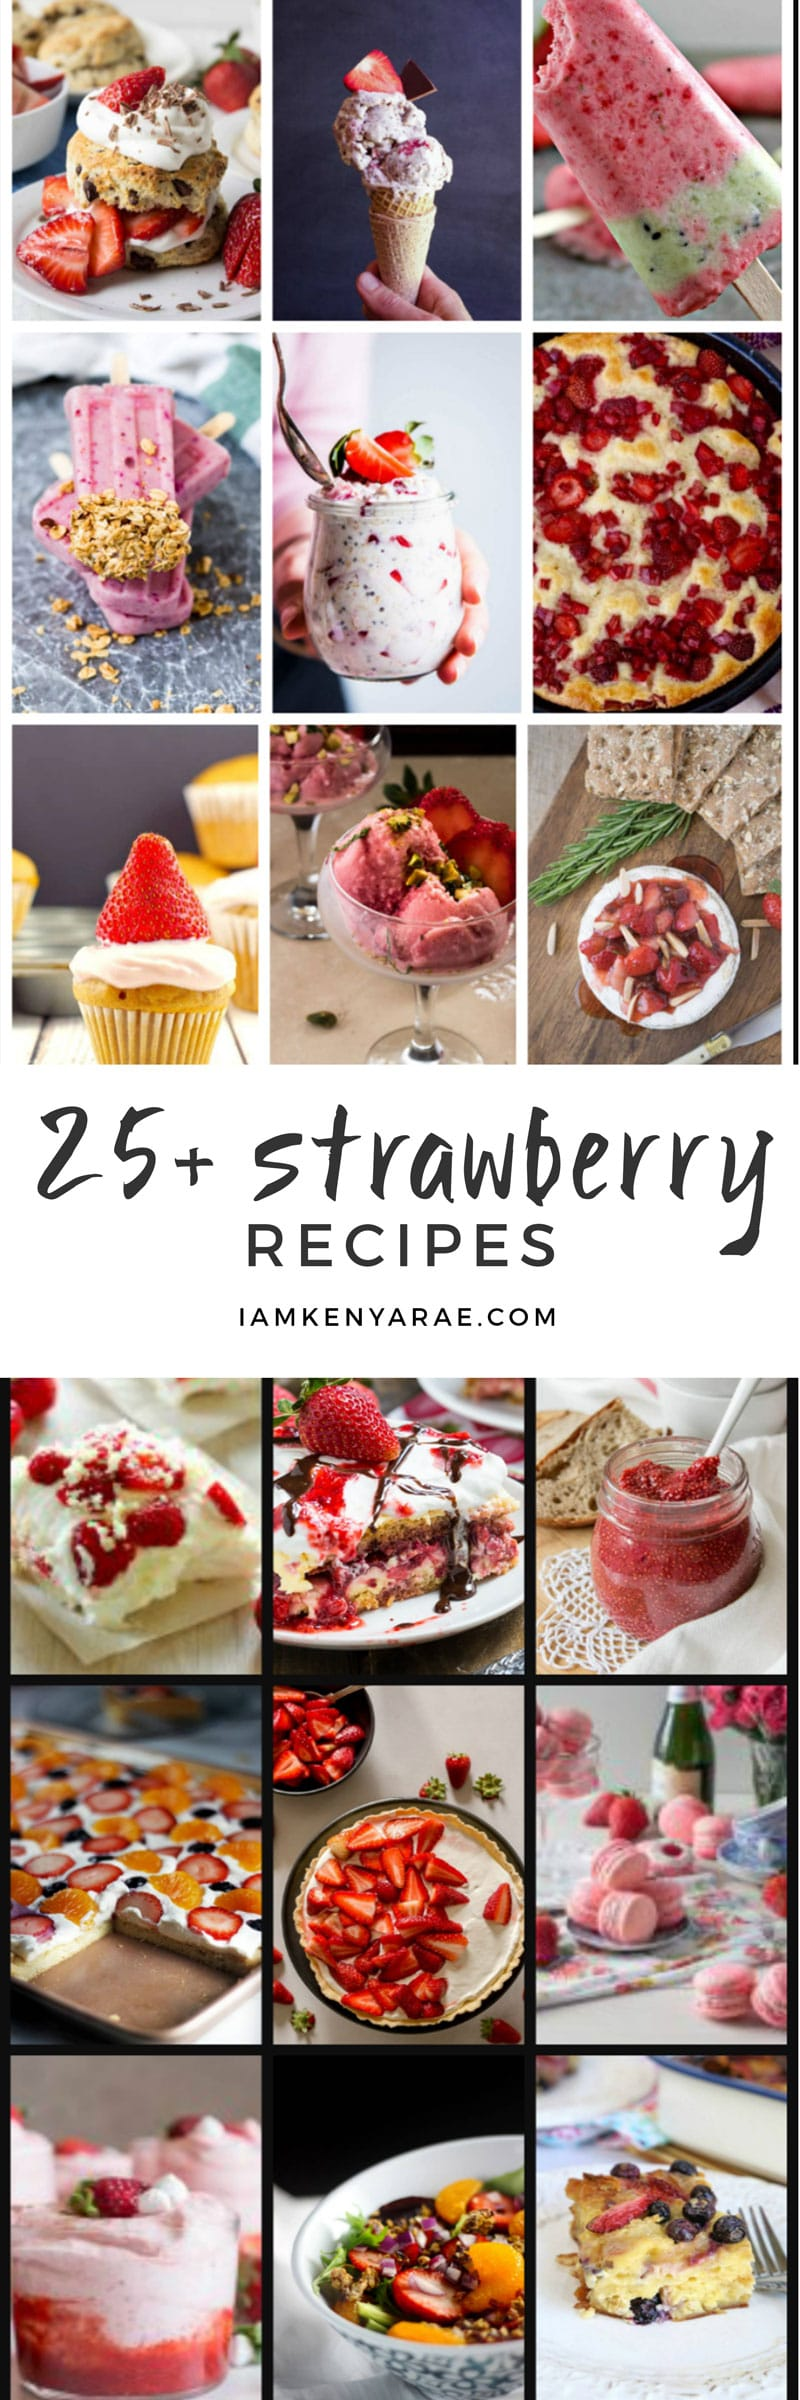 25+ Strawberry Recipes Perfect For Berry Picking Season A complete list of all the things you can make with your fresh picked berries.  More than 25 strawberry recipes for your delight! #strawberry #strawberryrecipes #strawberries #strawberrydessert #popciclerecipes #dessertrecipes